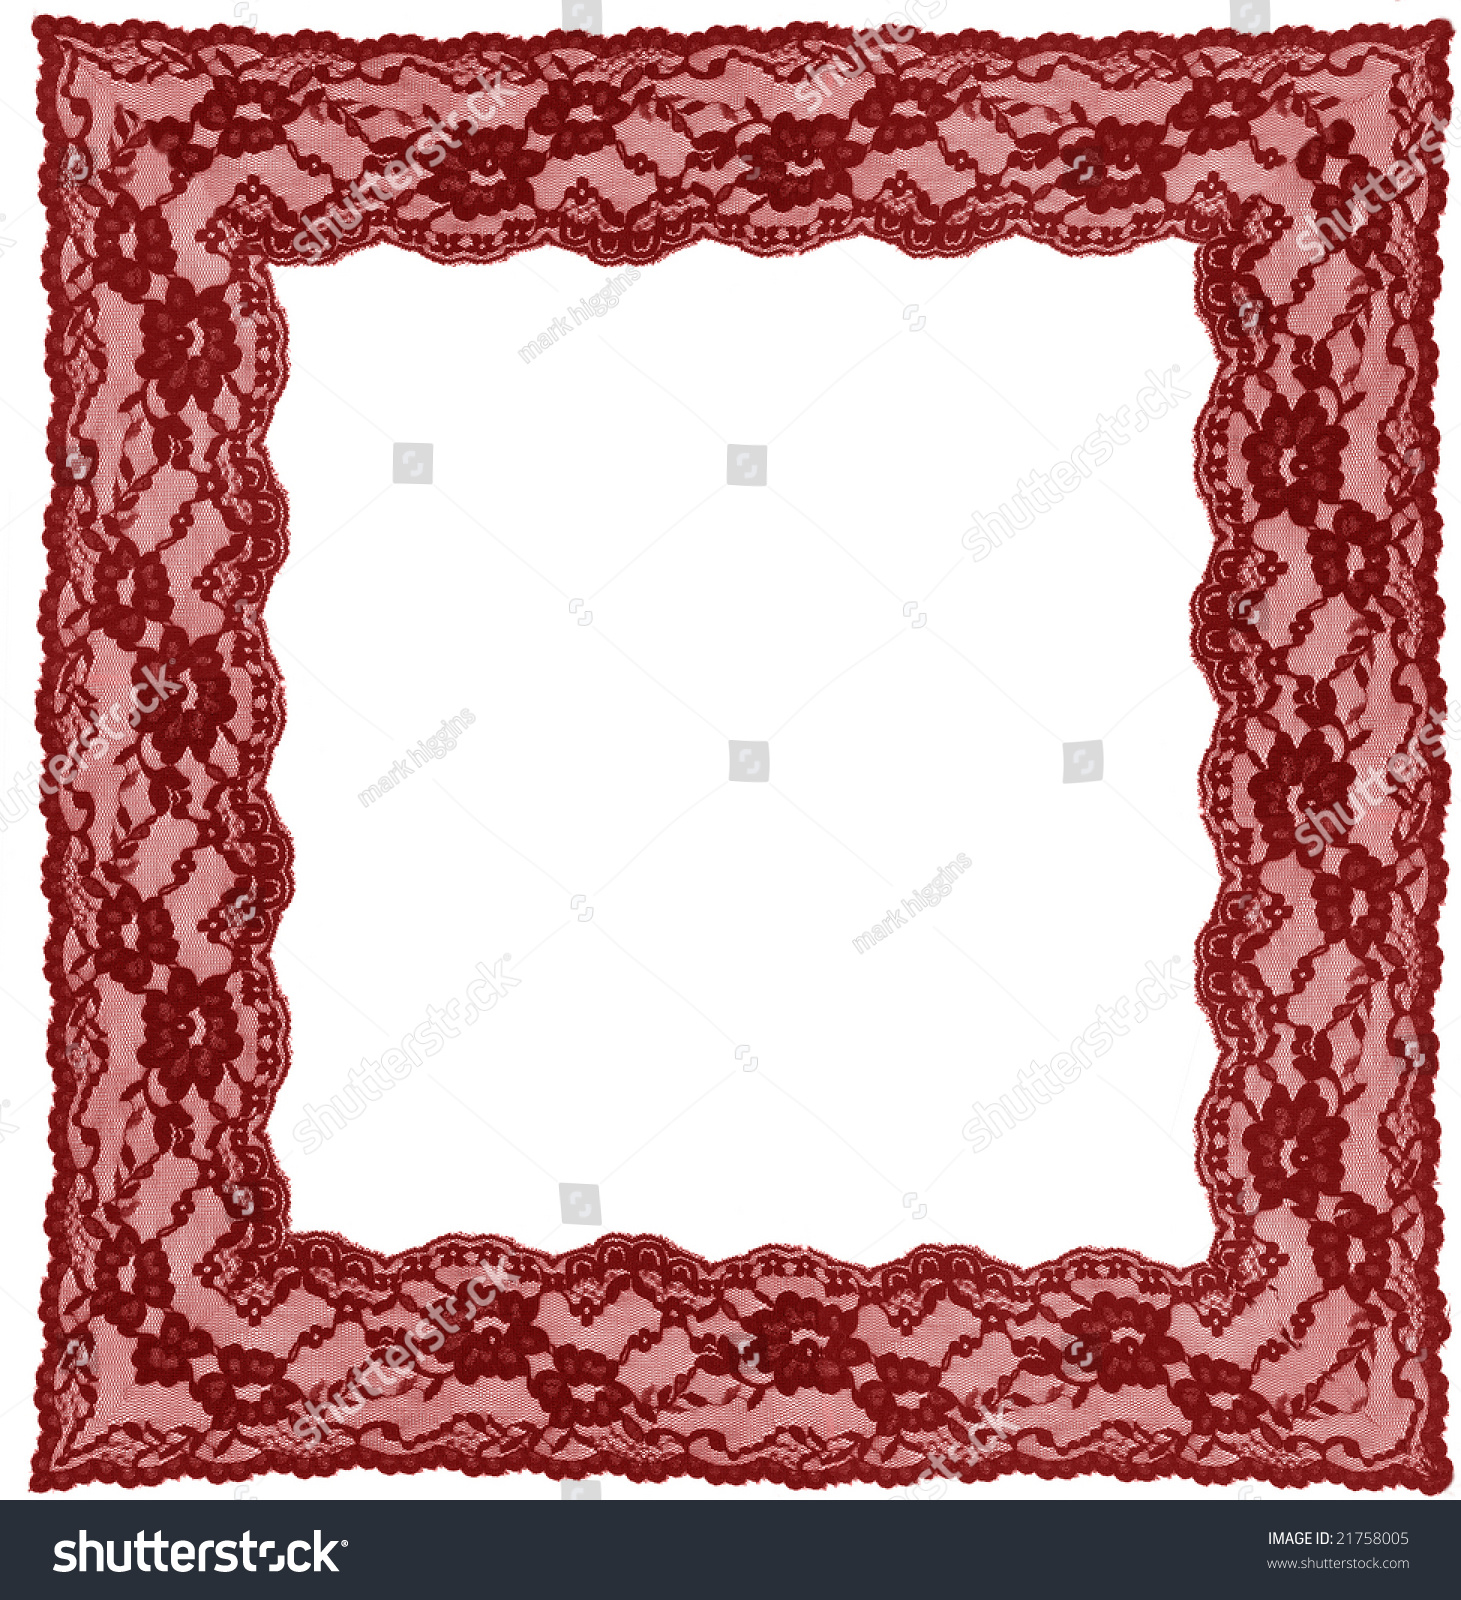 Red gift bows border with clipping path for easy background removing - Red Lace Frame